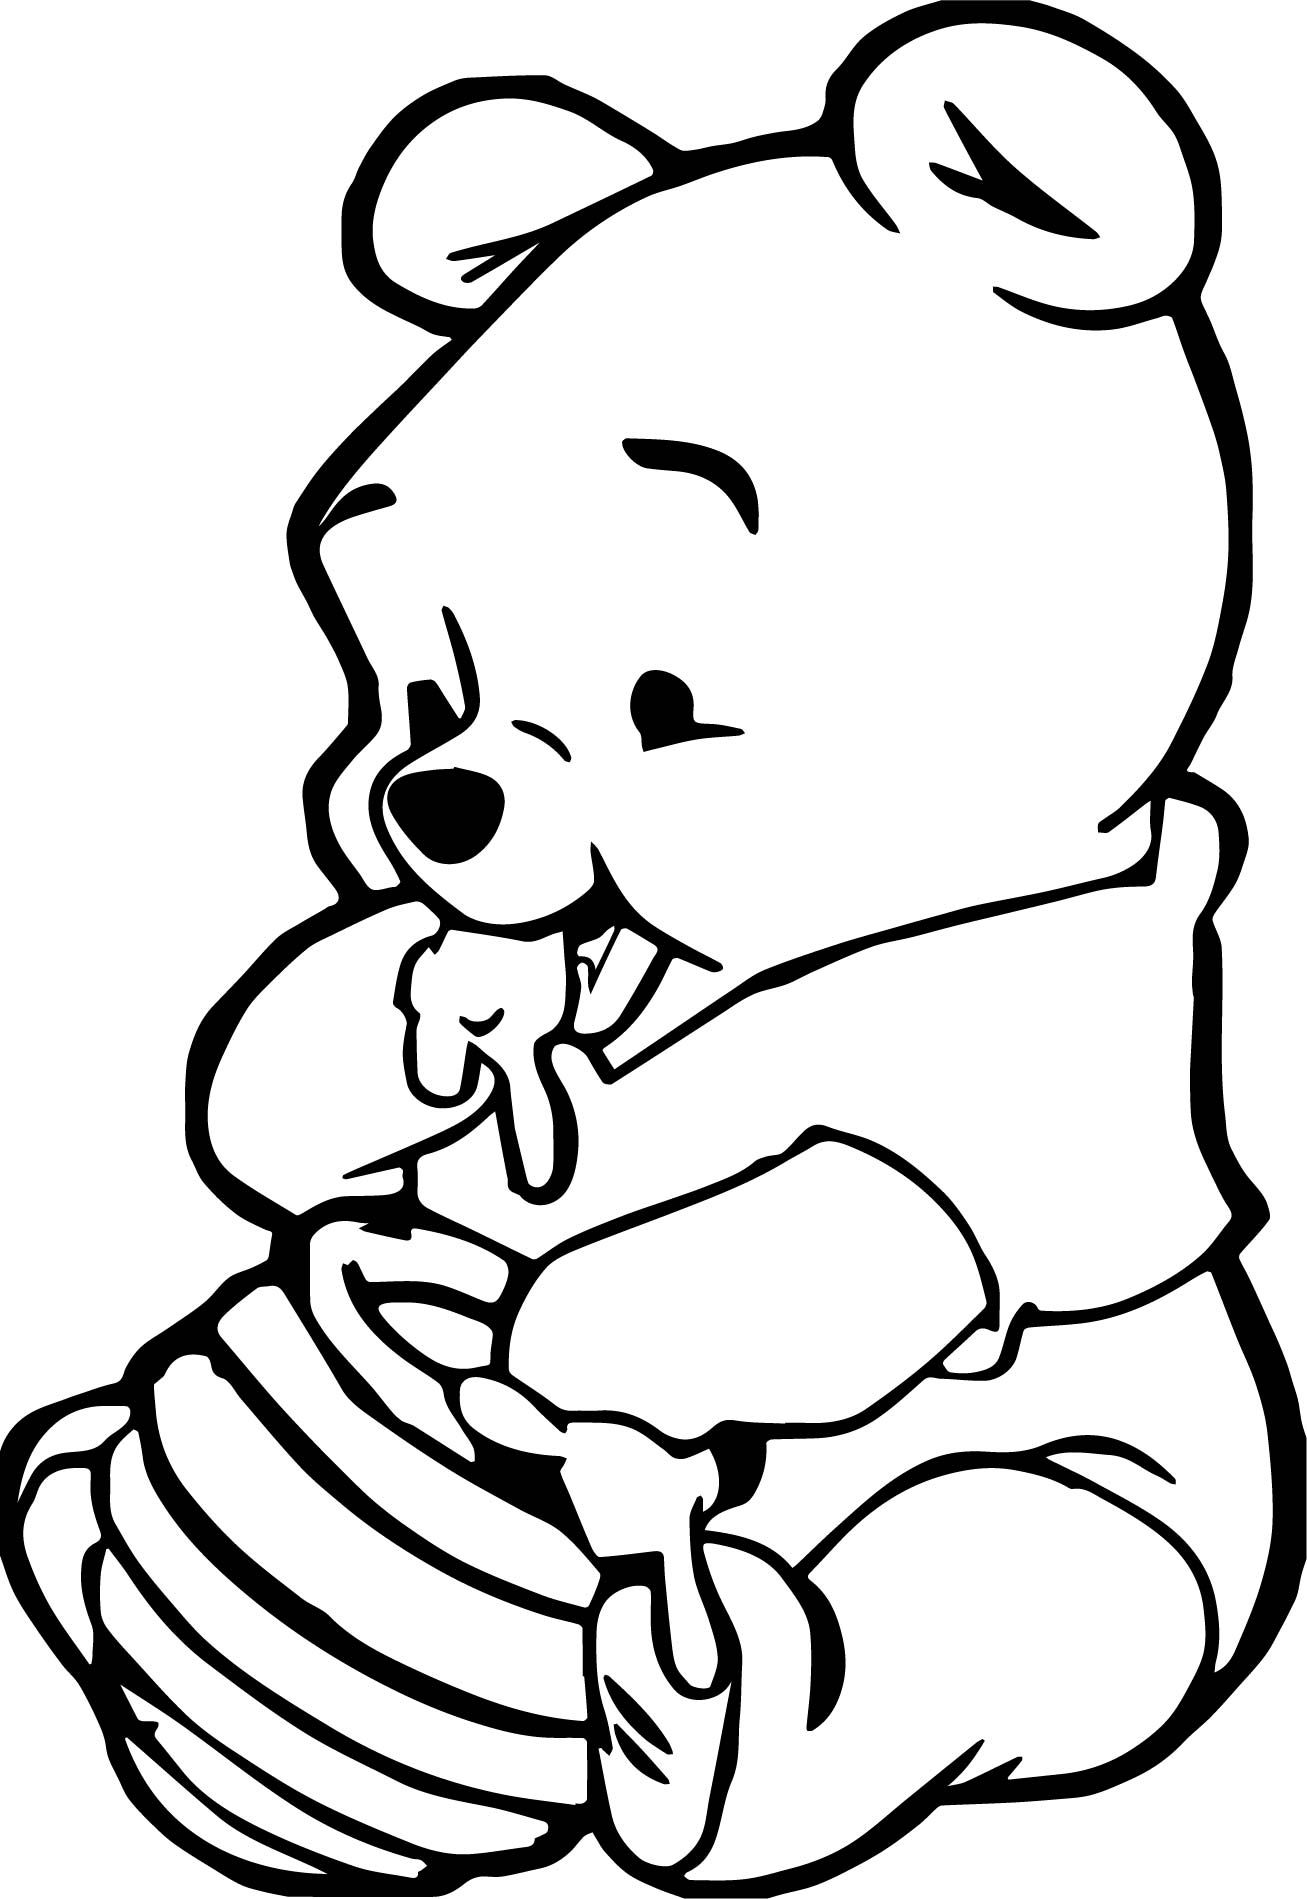 Awesome Cute Baby Winnie The Pooh Eating Hunny Coloring Page Animal Coloring Pages Cute Coloring Pages Zoo Animal Coloring Pages